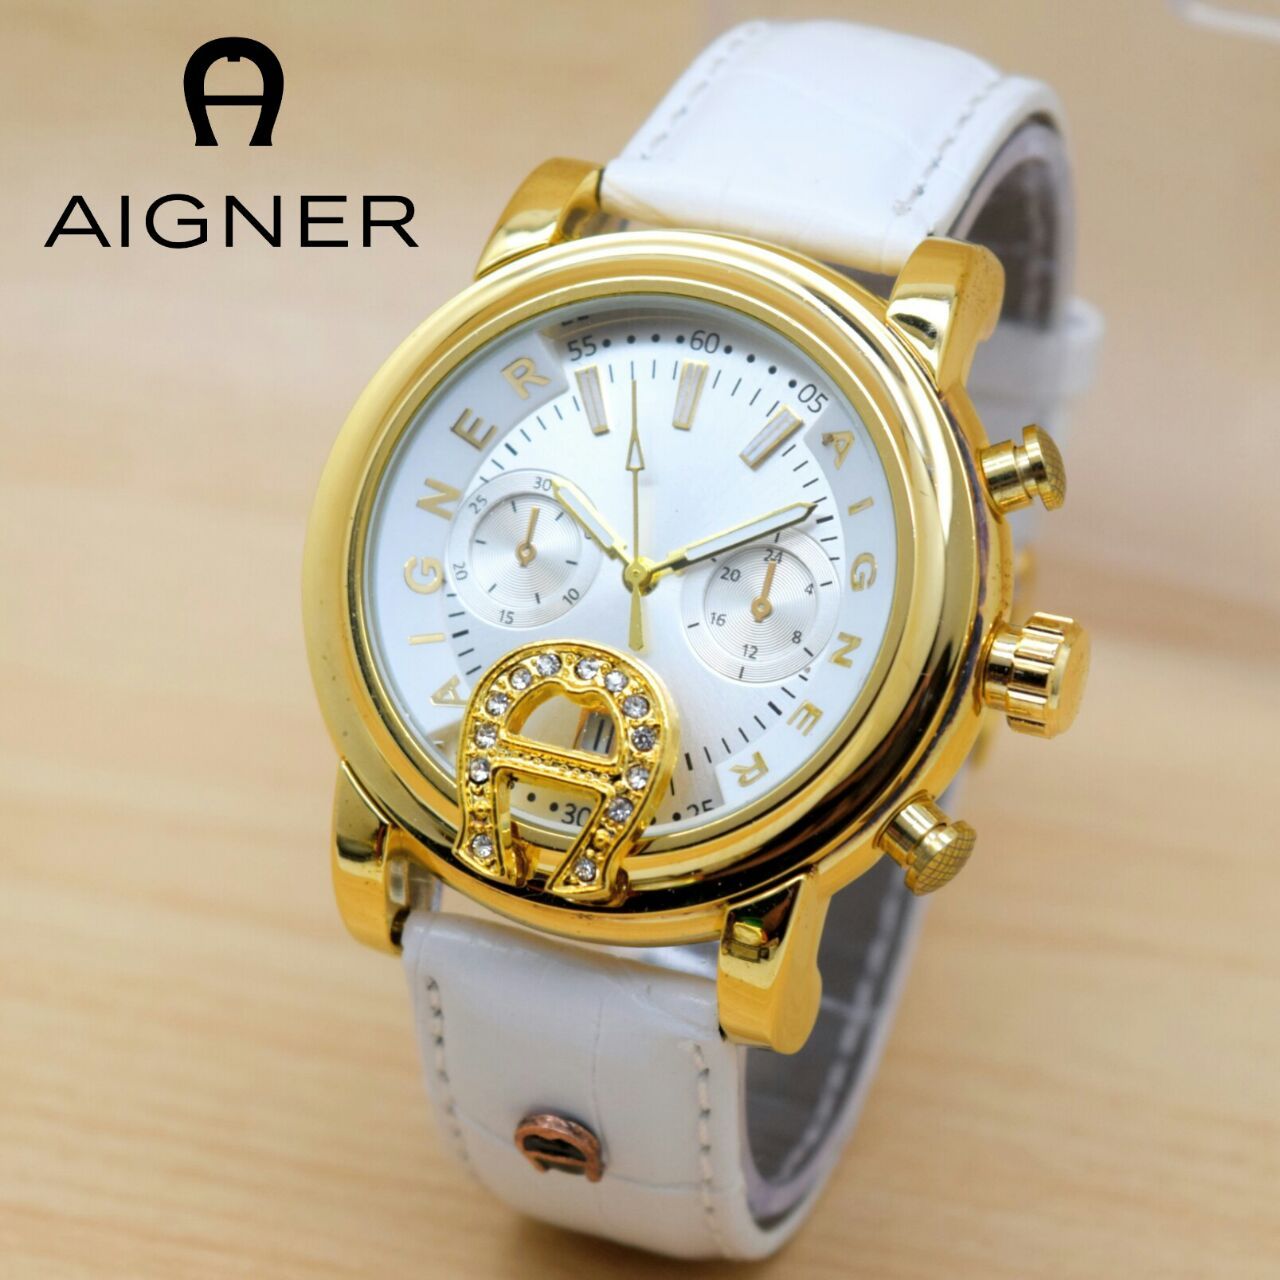 Jual Jam Tangan Aigner 7000000 Welcome To Genua Due A31653 Wanita Blossom Super White Color Aksesoris Mobil